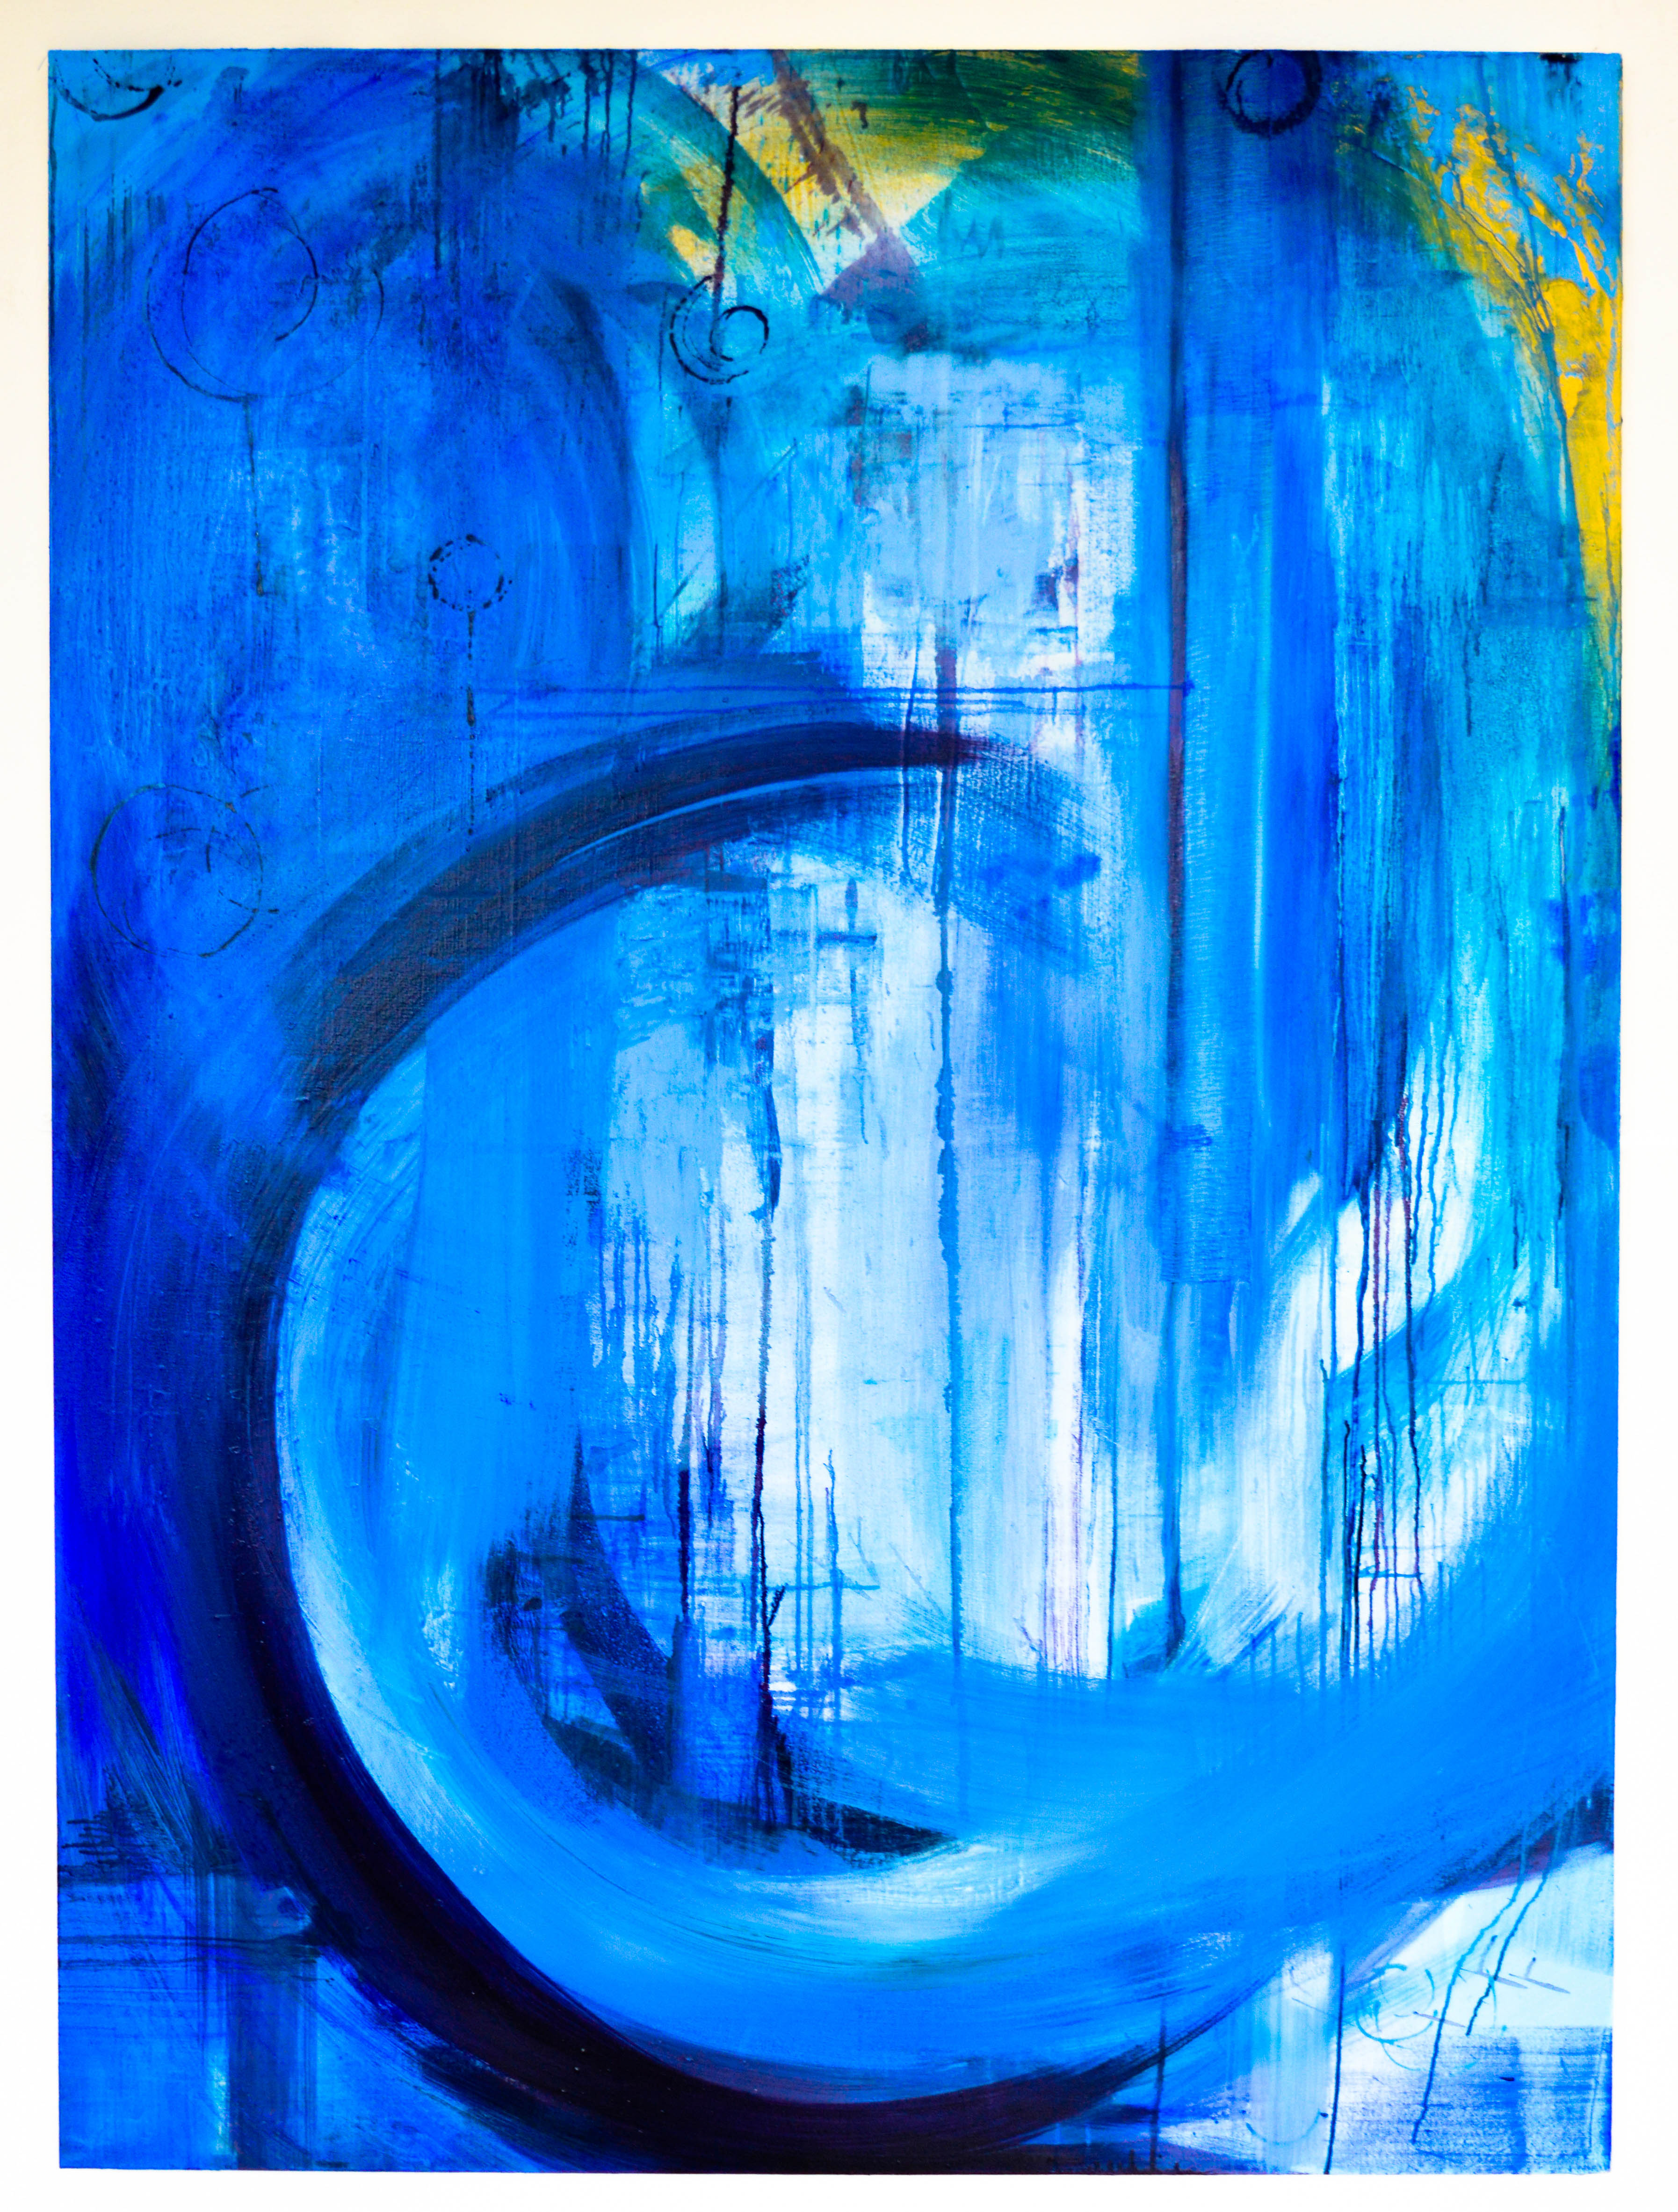 Blue Series 2.1. Oil on canvas. 182.9x134.5cm. For Sale.